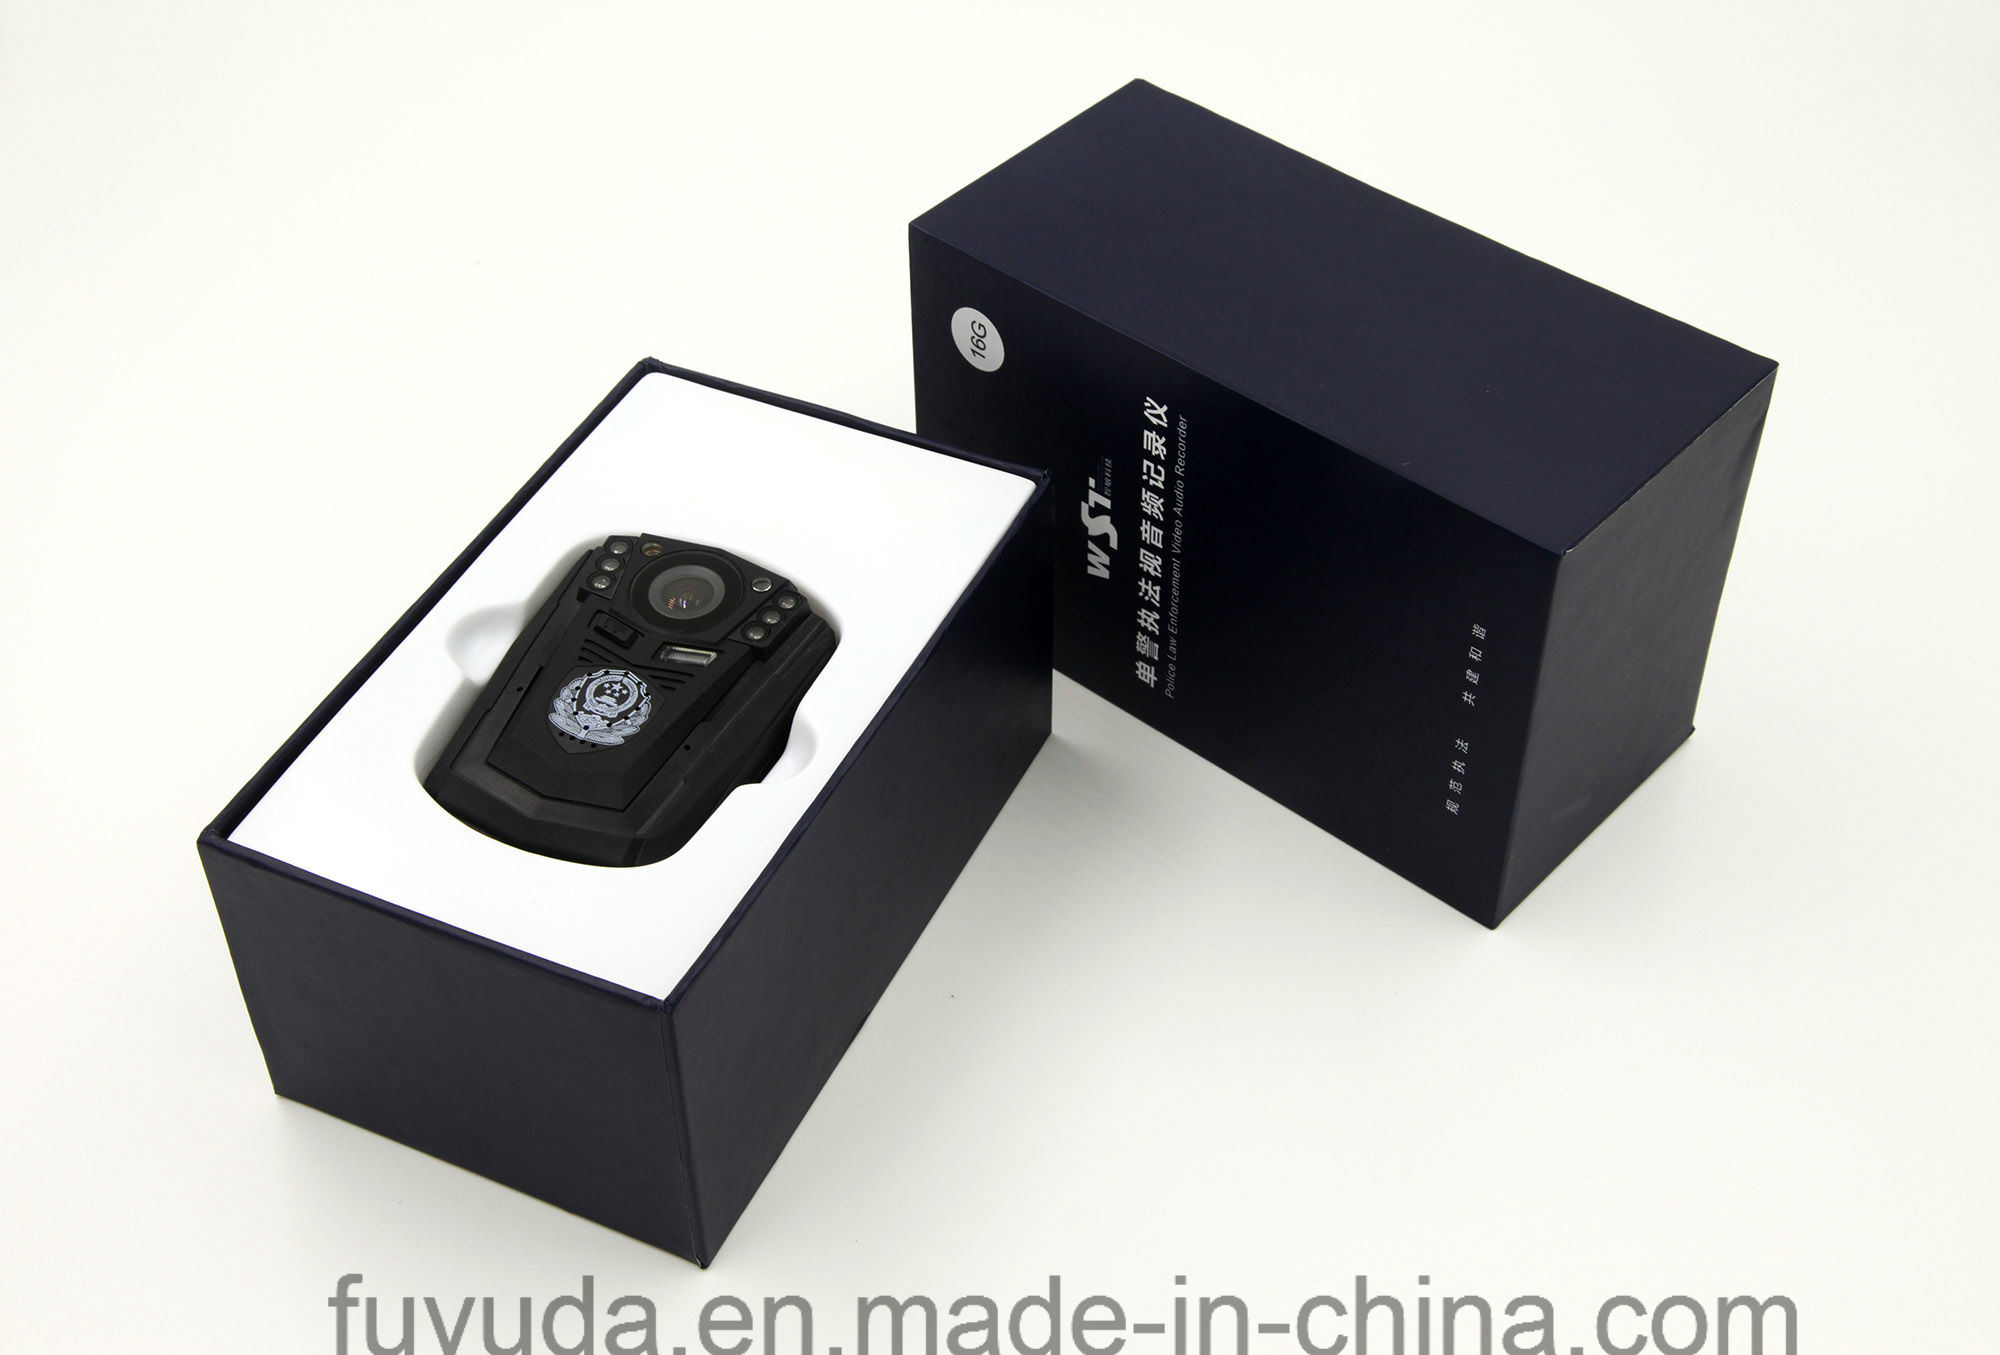 Fuyuda 1080P 140 Wide-Angle Police Worn Body Camera with Romote Control